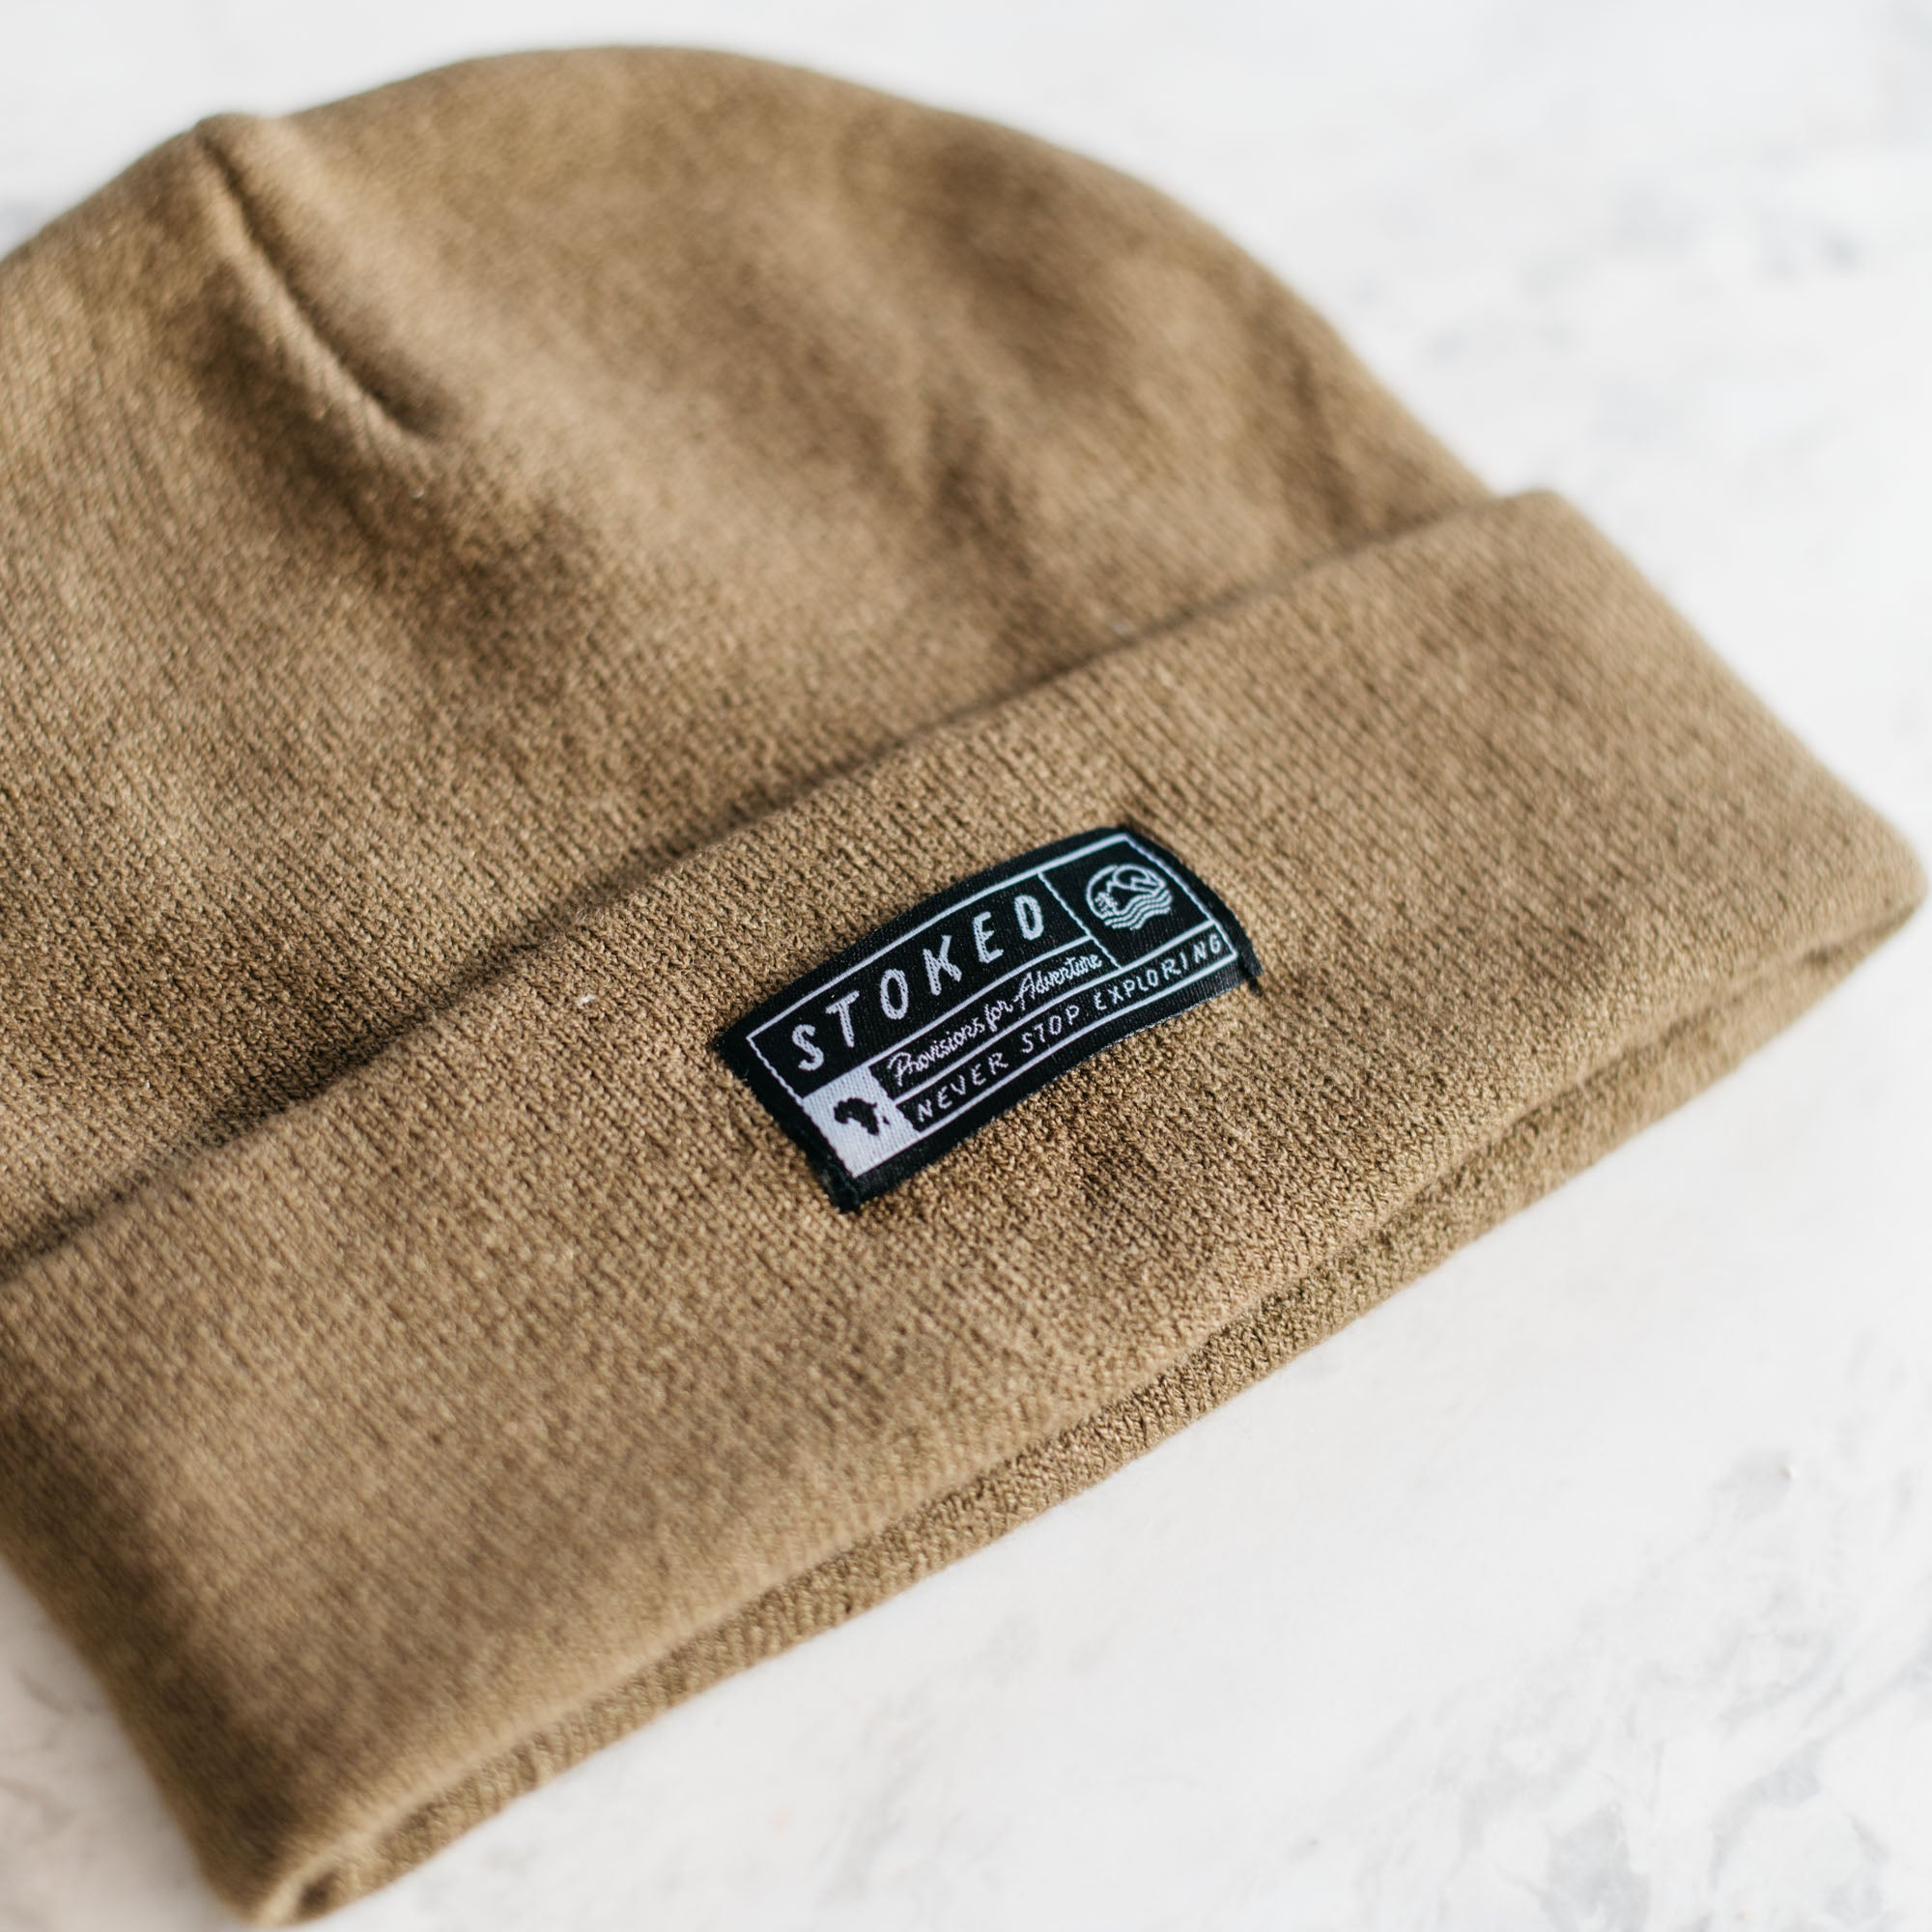 The Khaki Dessert Beanie - Stokedthebrand. Lifestyle products for outdoor adventures. Made in South Africa